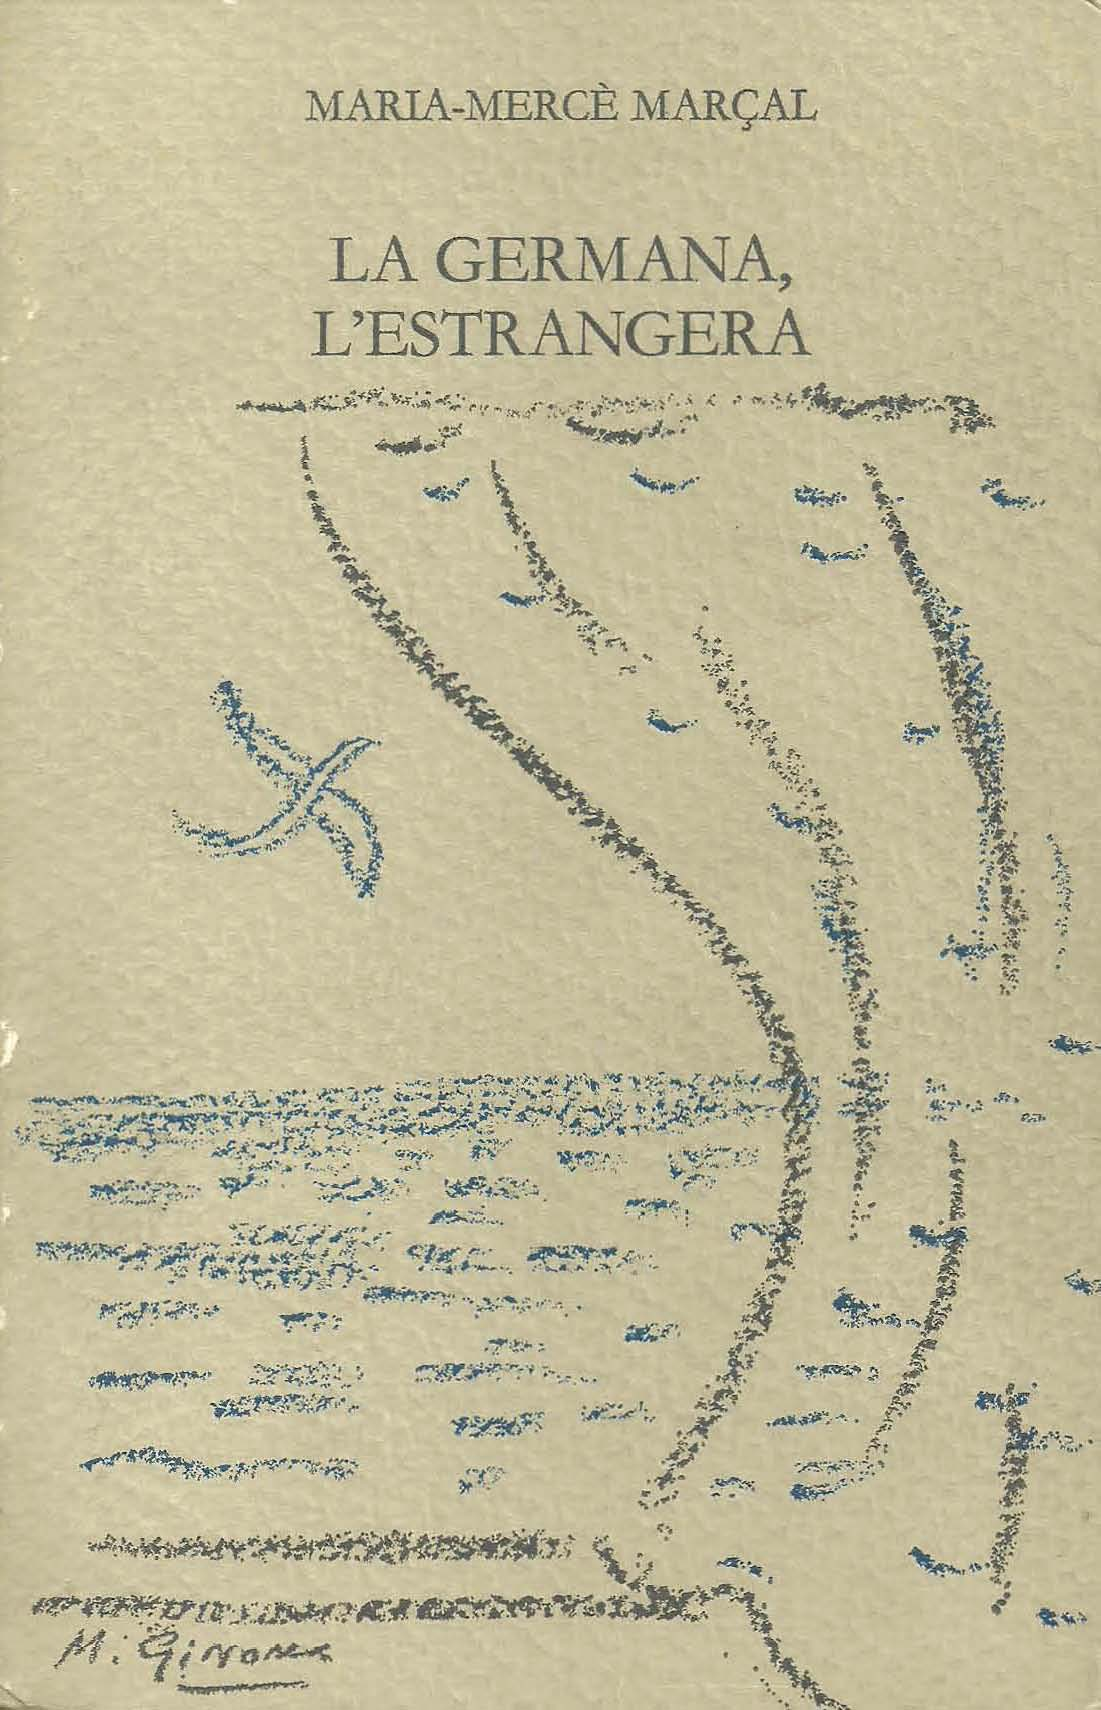 La germana, l'estrangera (1981-1984) - Poesia